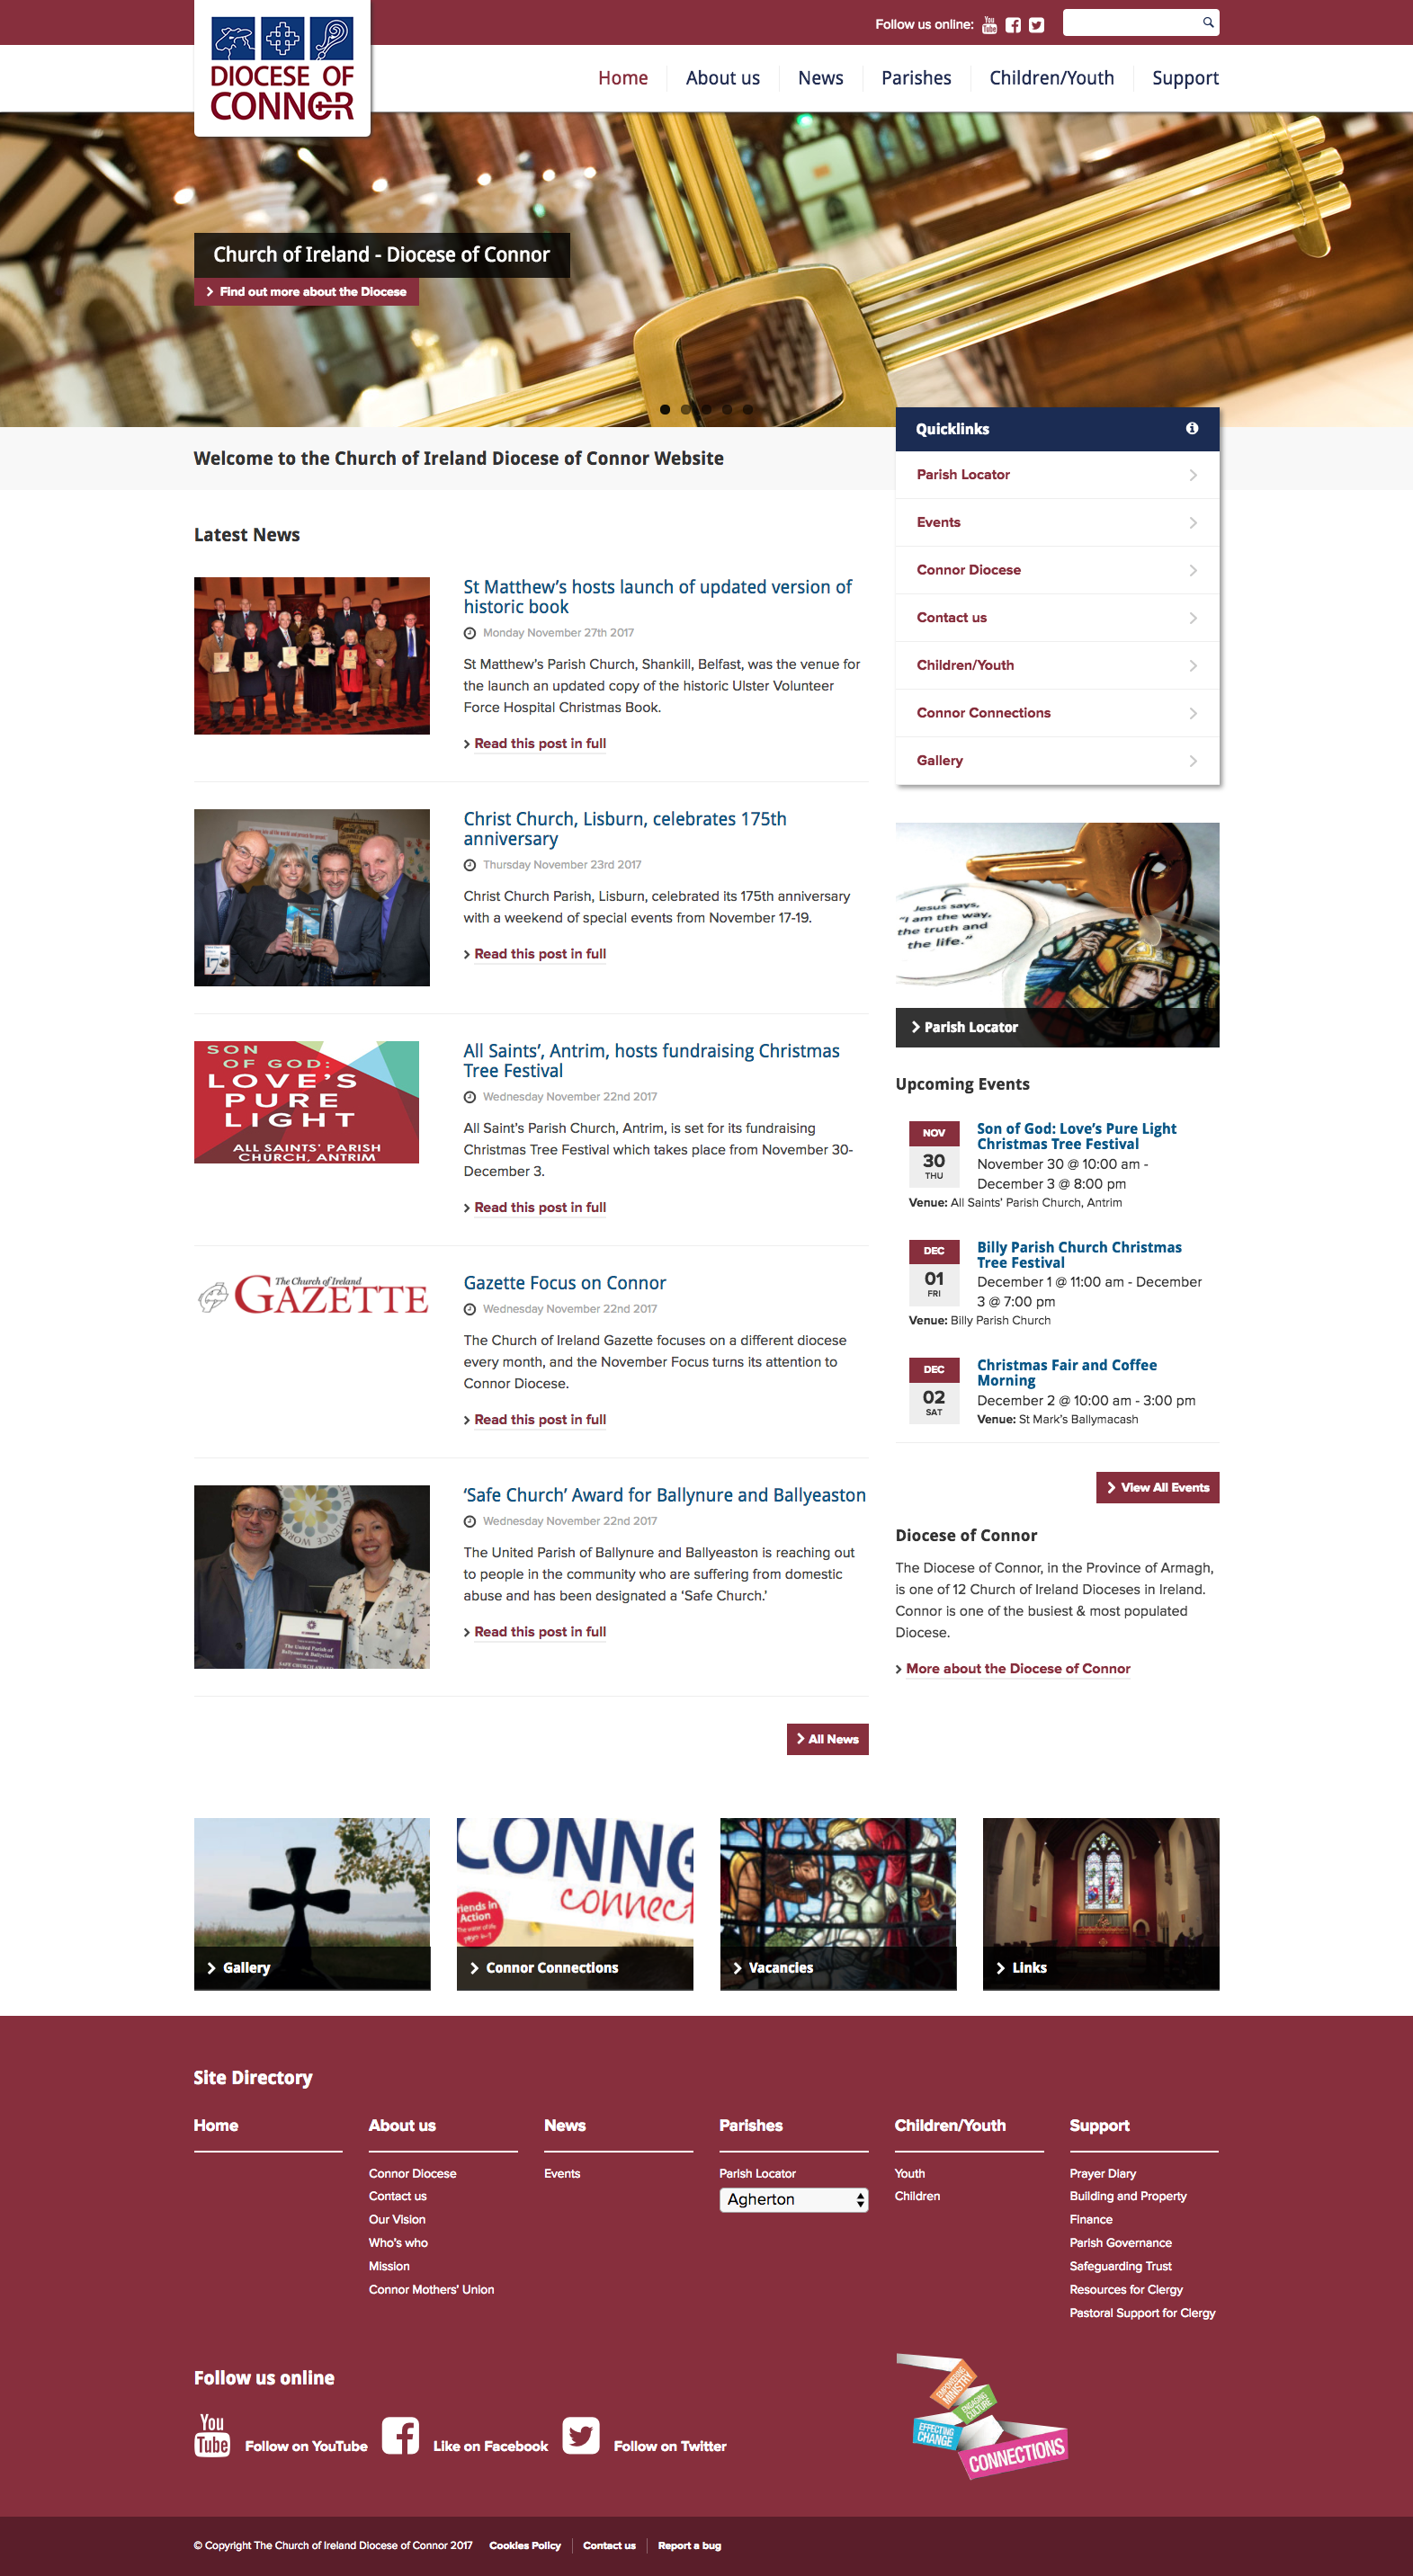 Diocese of Connor Homepage View